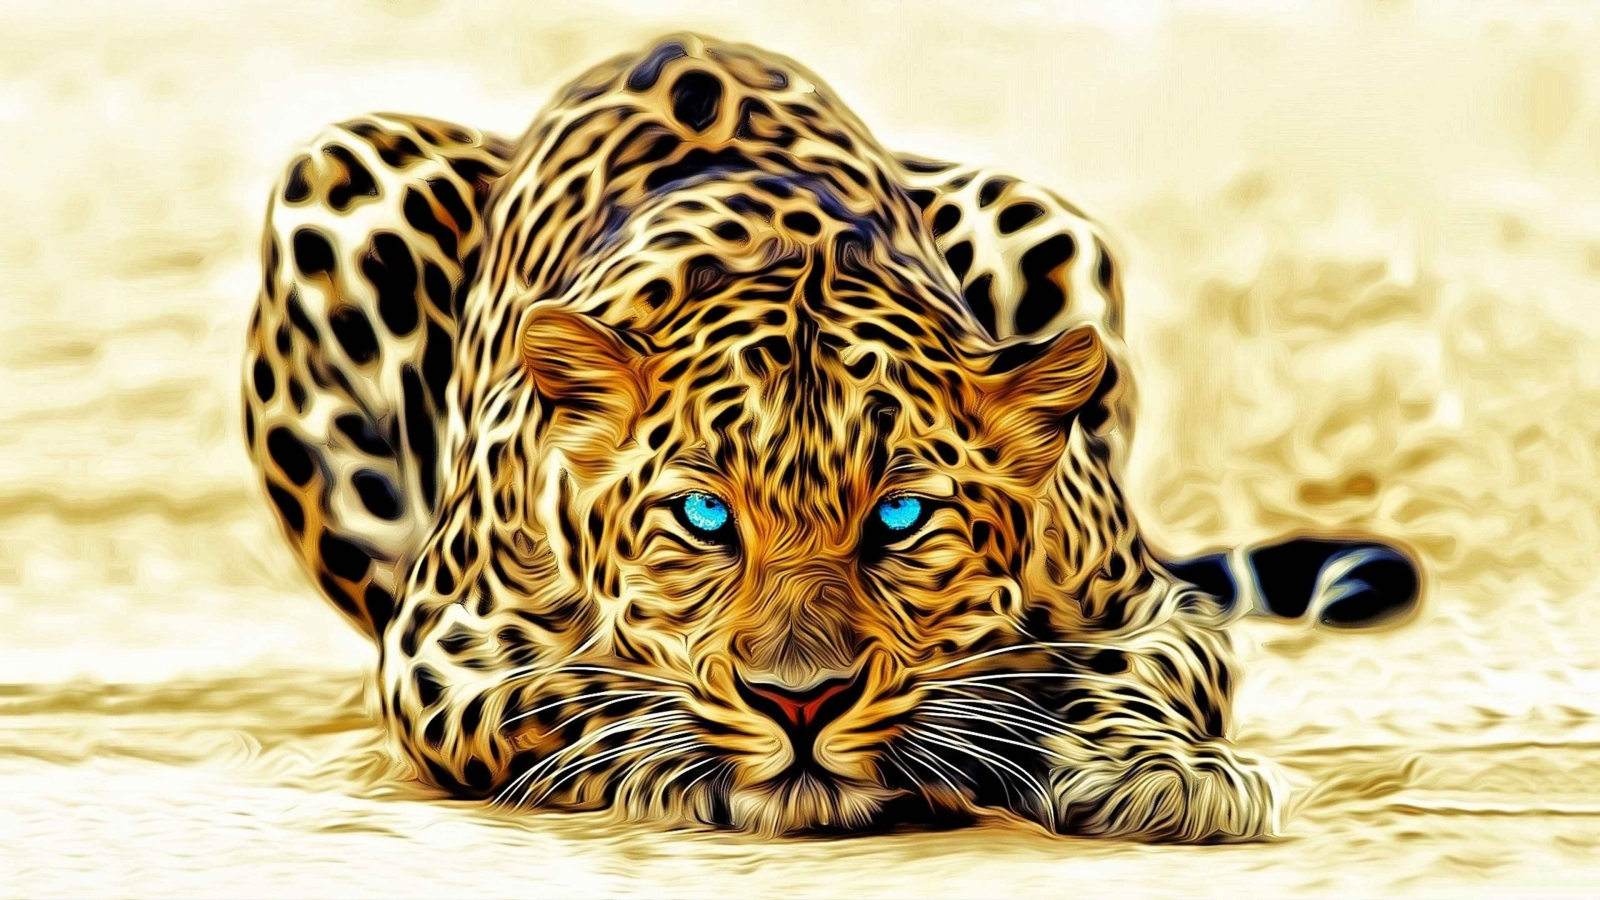 Best Animals 3d Hd Tiger Wallpaper